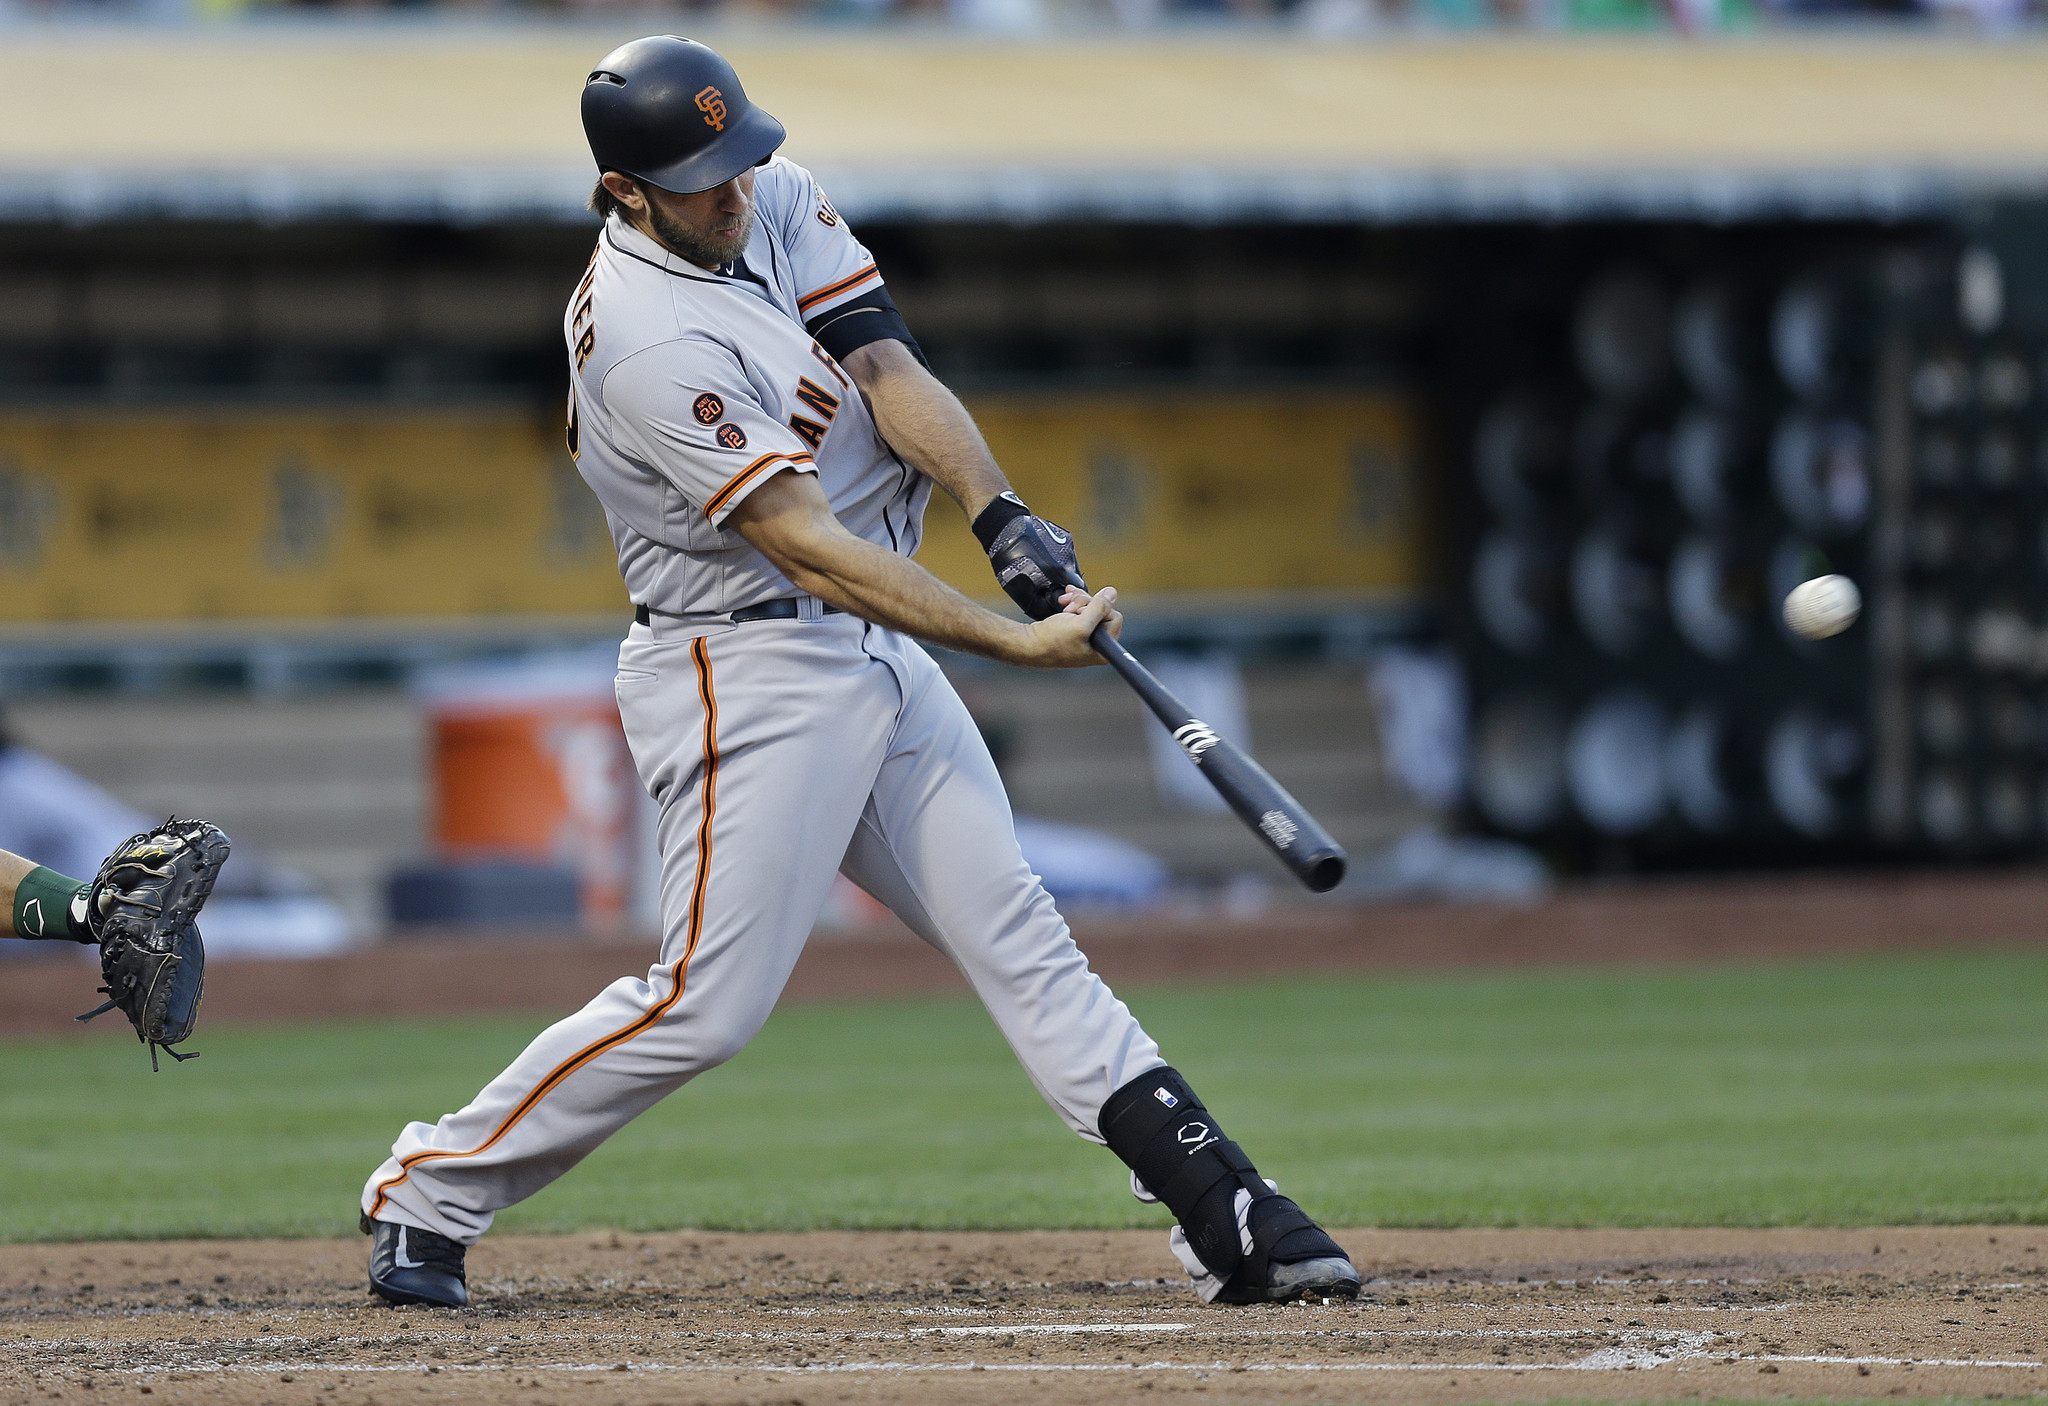 dh in baseball The designated hitter (dh) is a player whose sole purpose during a game is to permanently hit and run the bases for a defensive player, usually the pitcher the designated hitter in major league baseball is only allowed in the american league.